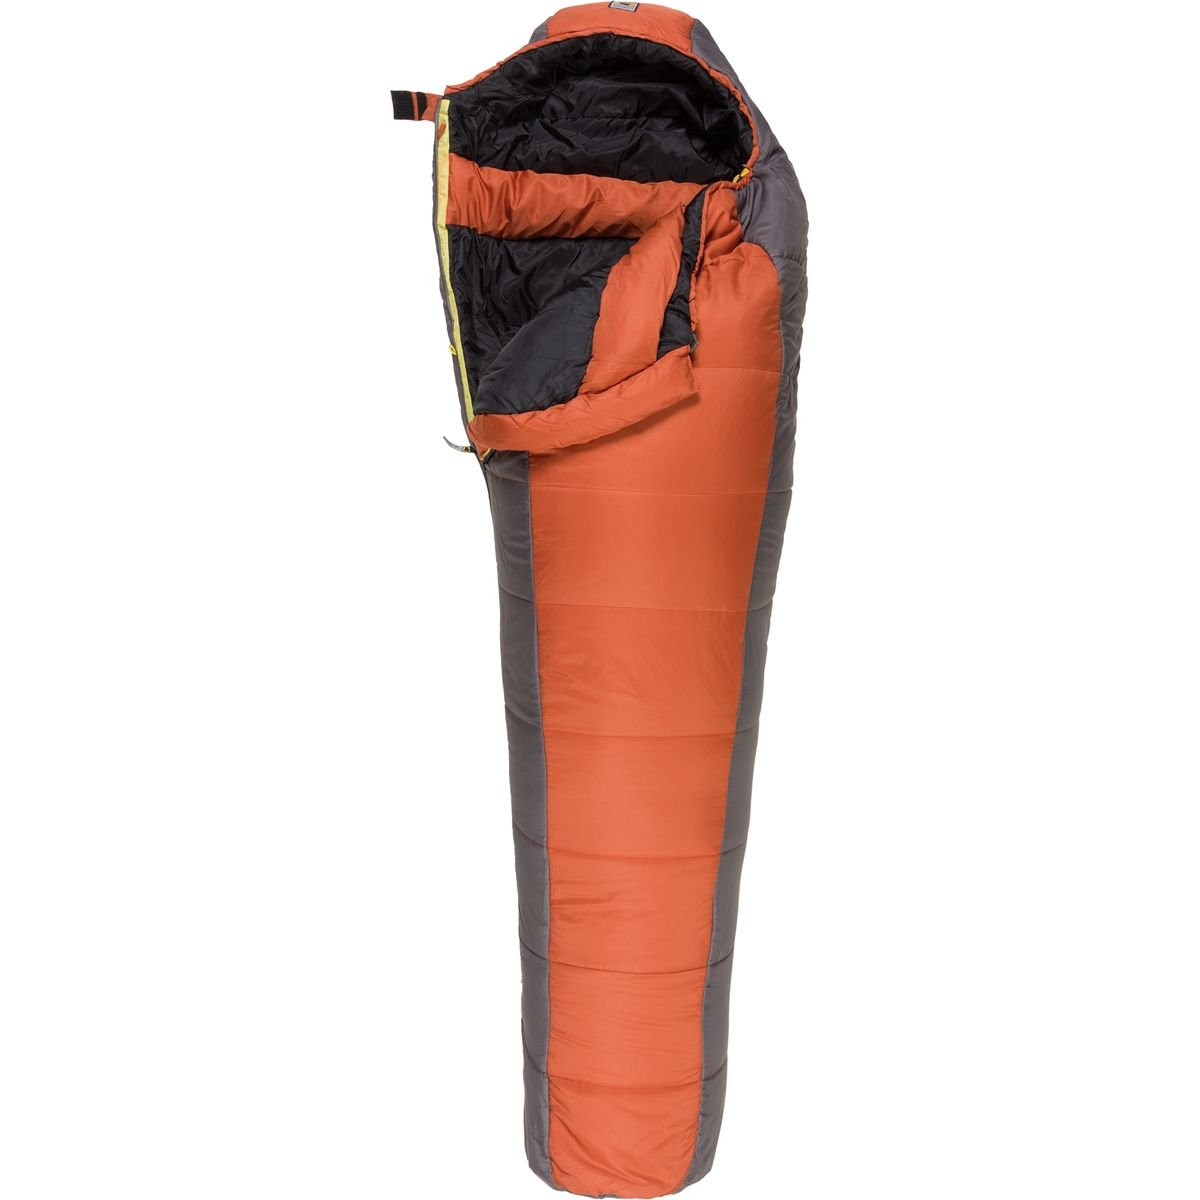 3. Mountainsmith Redcloud Sleeping Bag